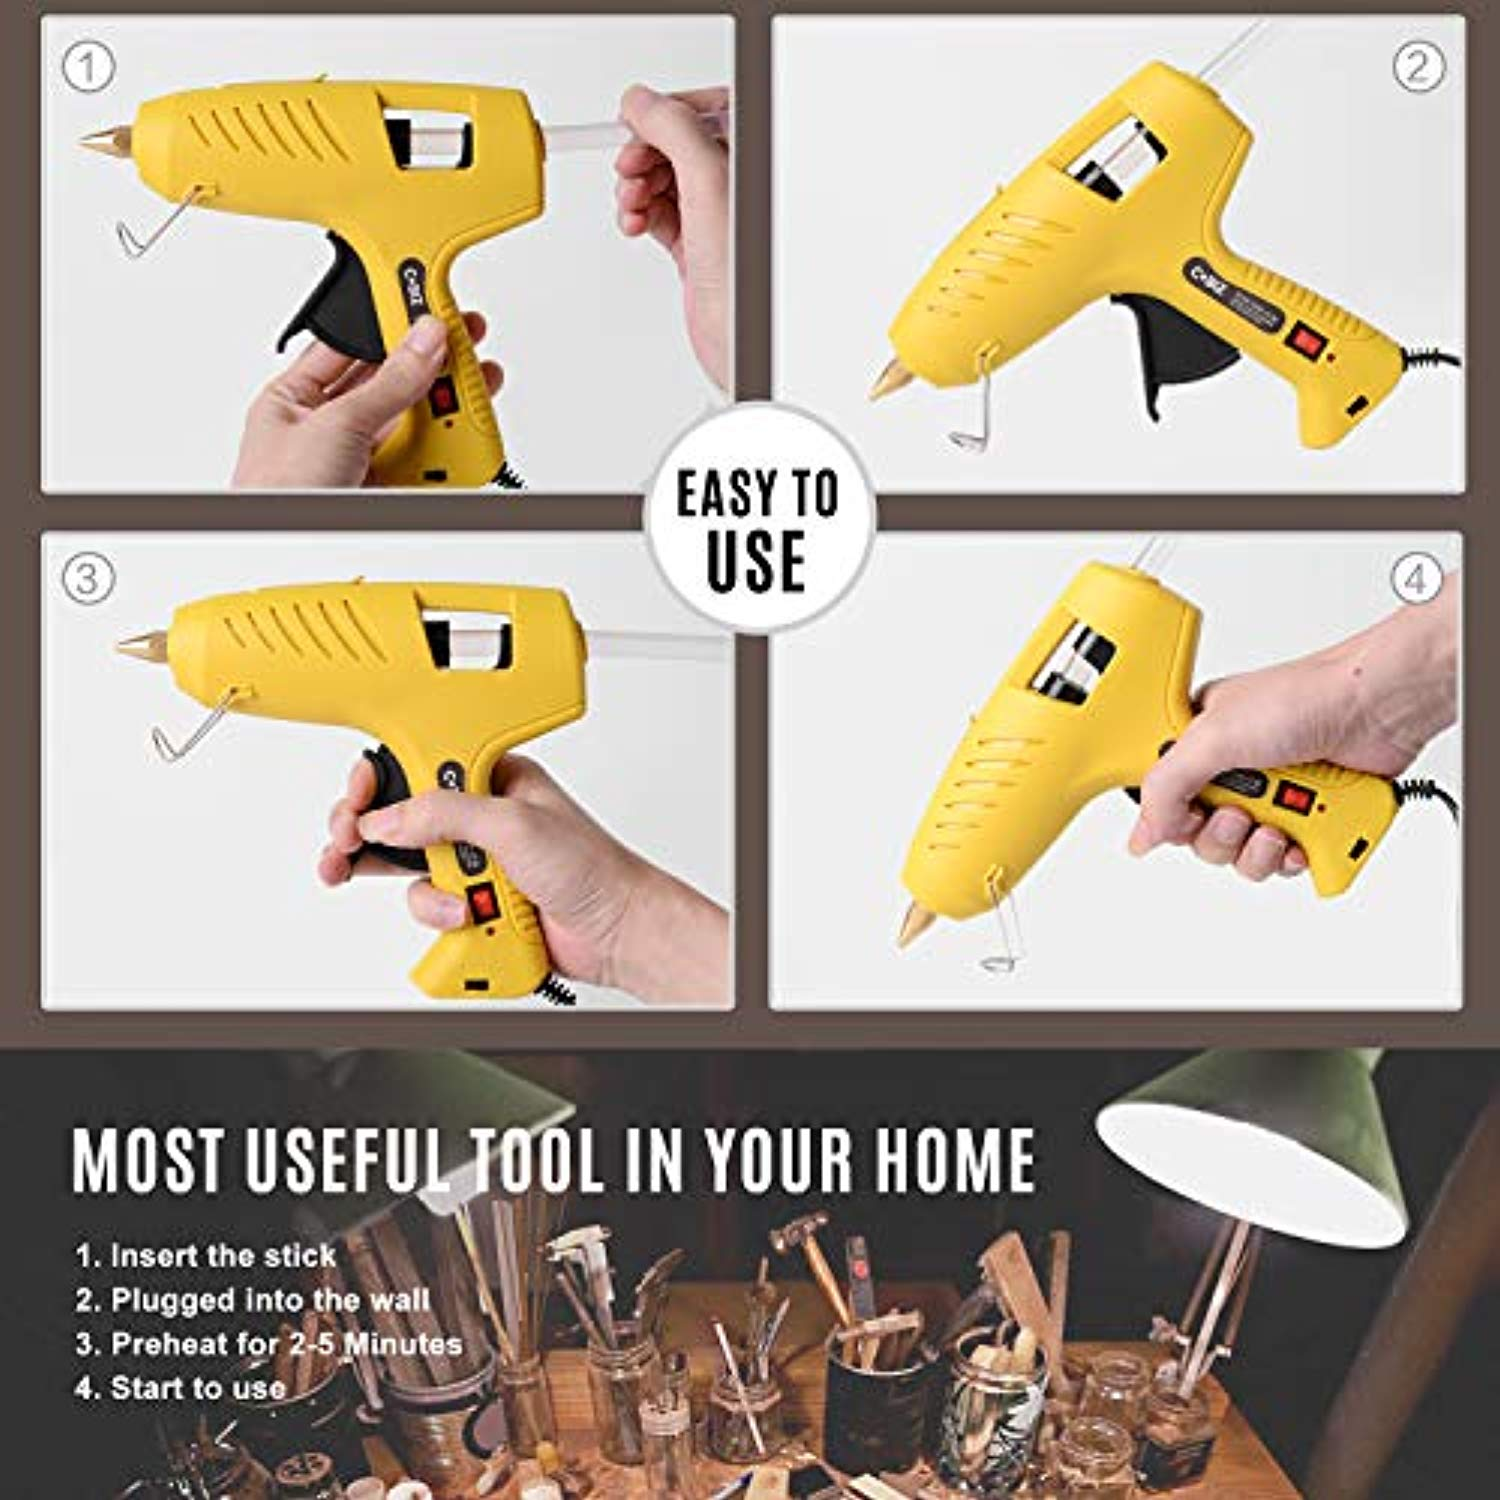 "Hot Glue Gun with LED Lights,60/100W Full Size Dual Power High Temp Heavy Duty Melt Glue Gun Kit with 10 Pcs Premium Glue Sticks(0.43'' x 8"") for DIY, Arts & Crafts Use,Christmas Decoration/Gifts"